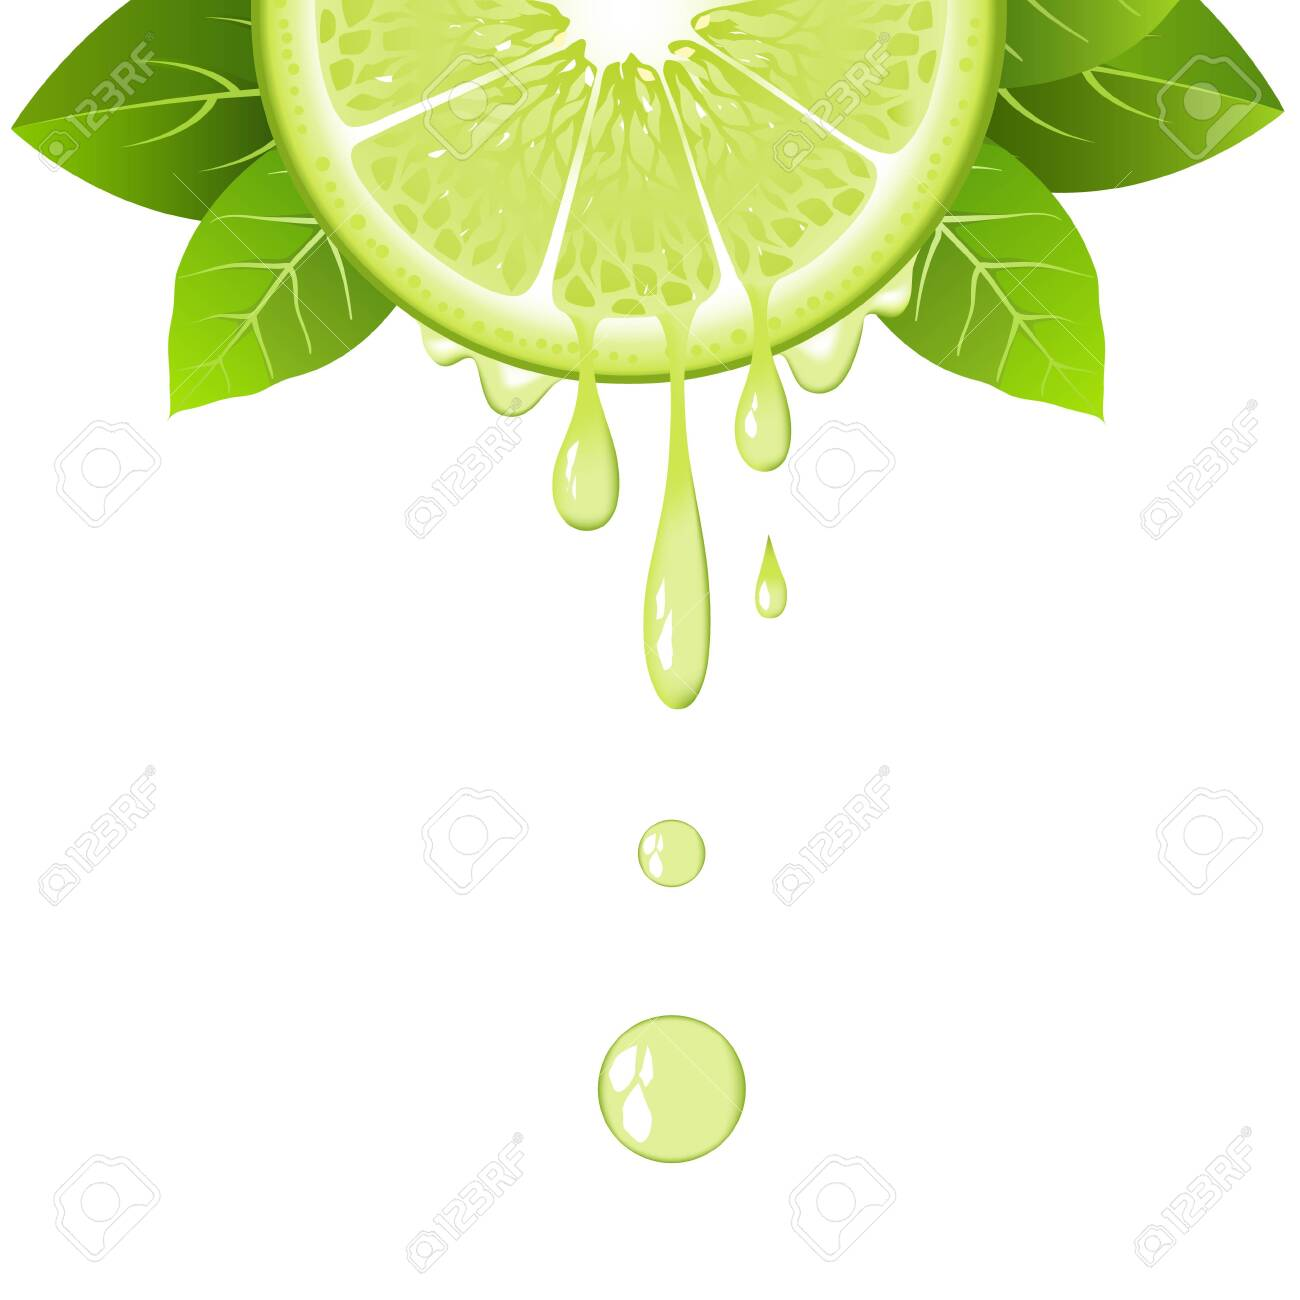 Realistic half lime slice with leaves and drops of juice. Juicy fruit. Fresh citrus design on white background vector illustration - 127968621